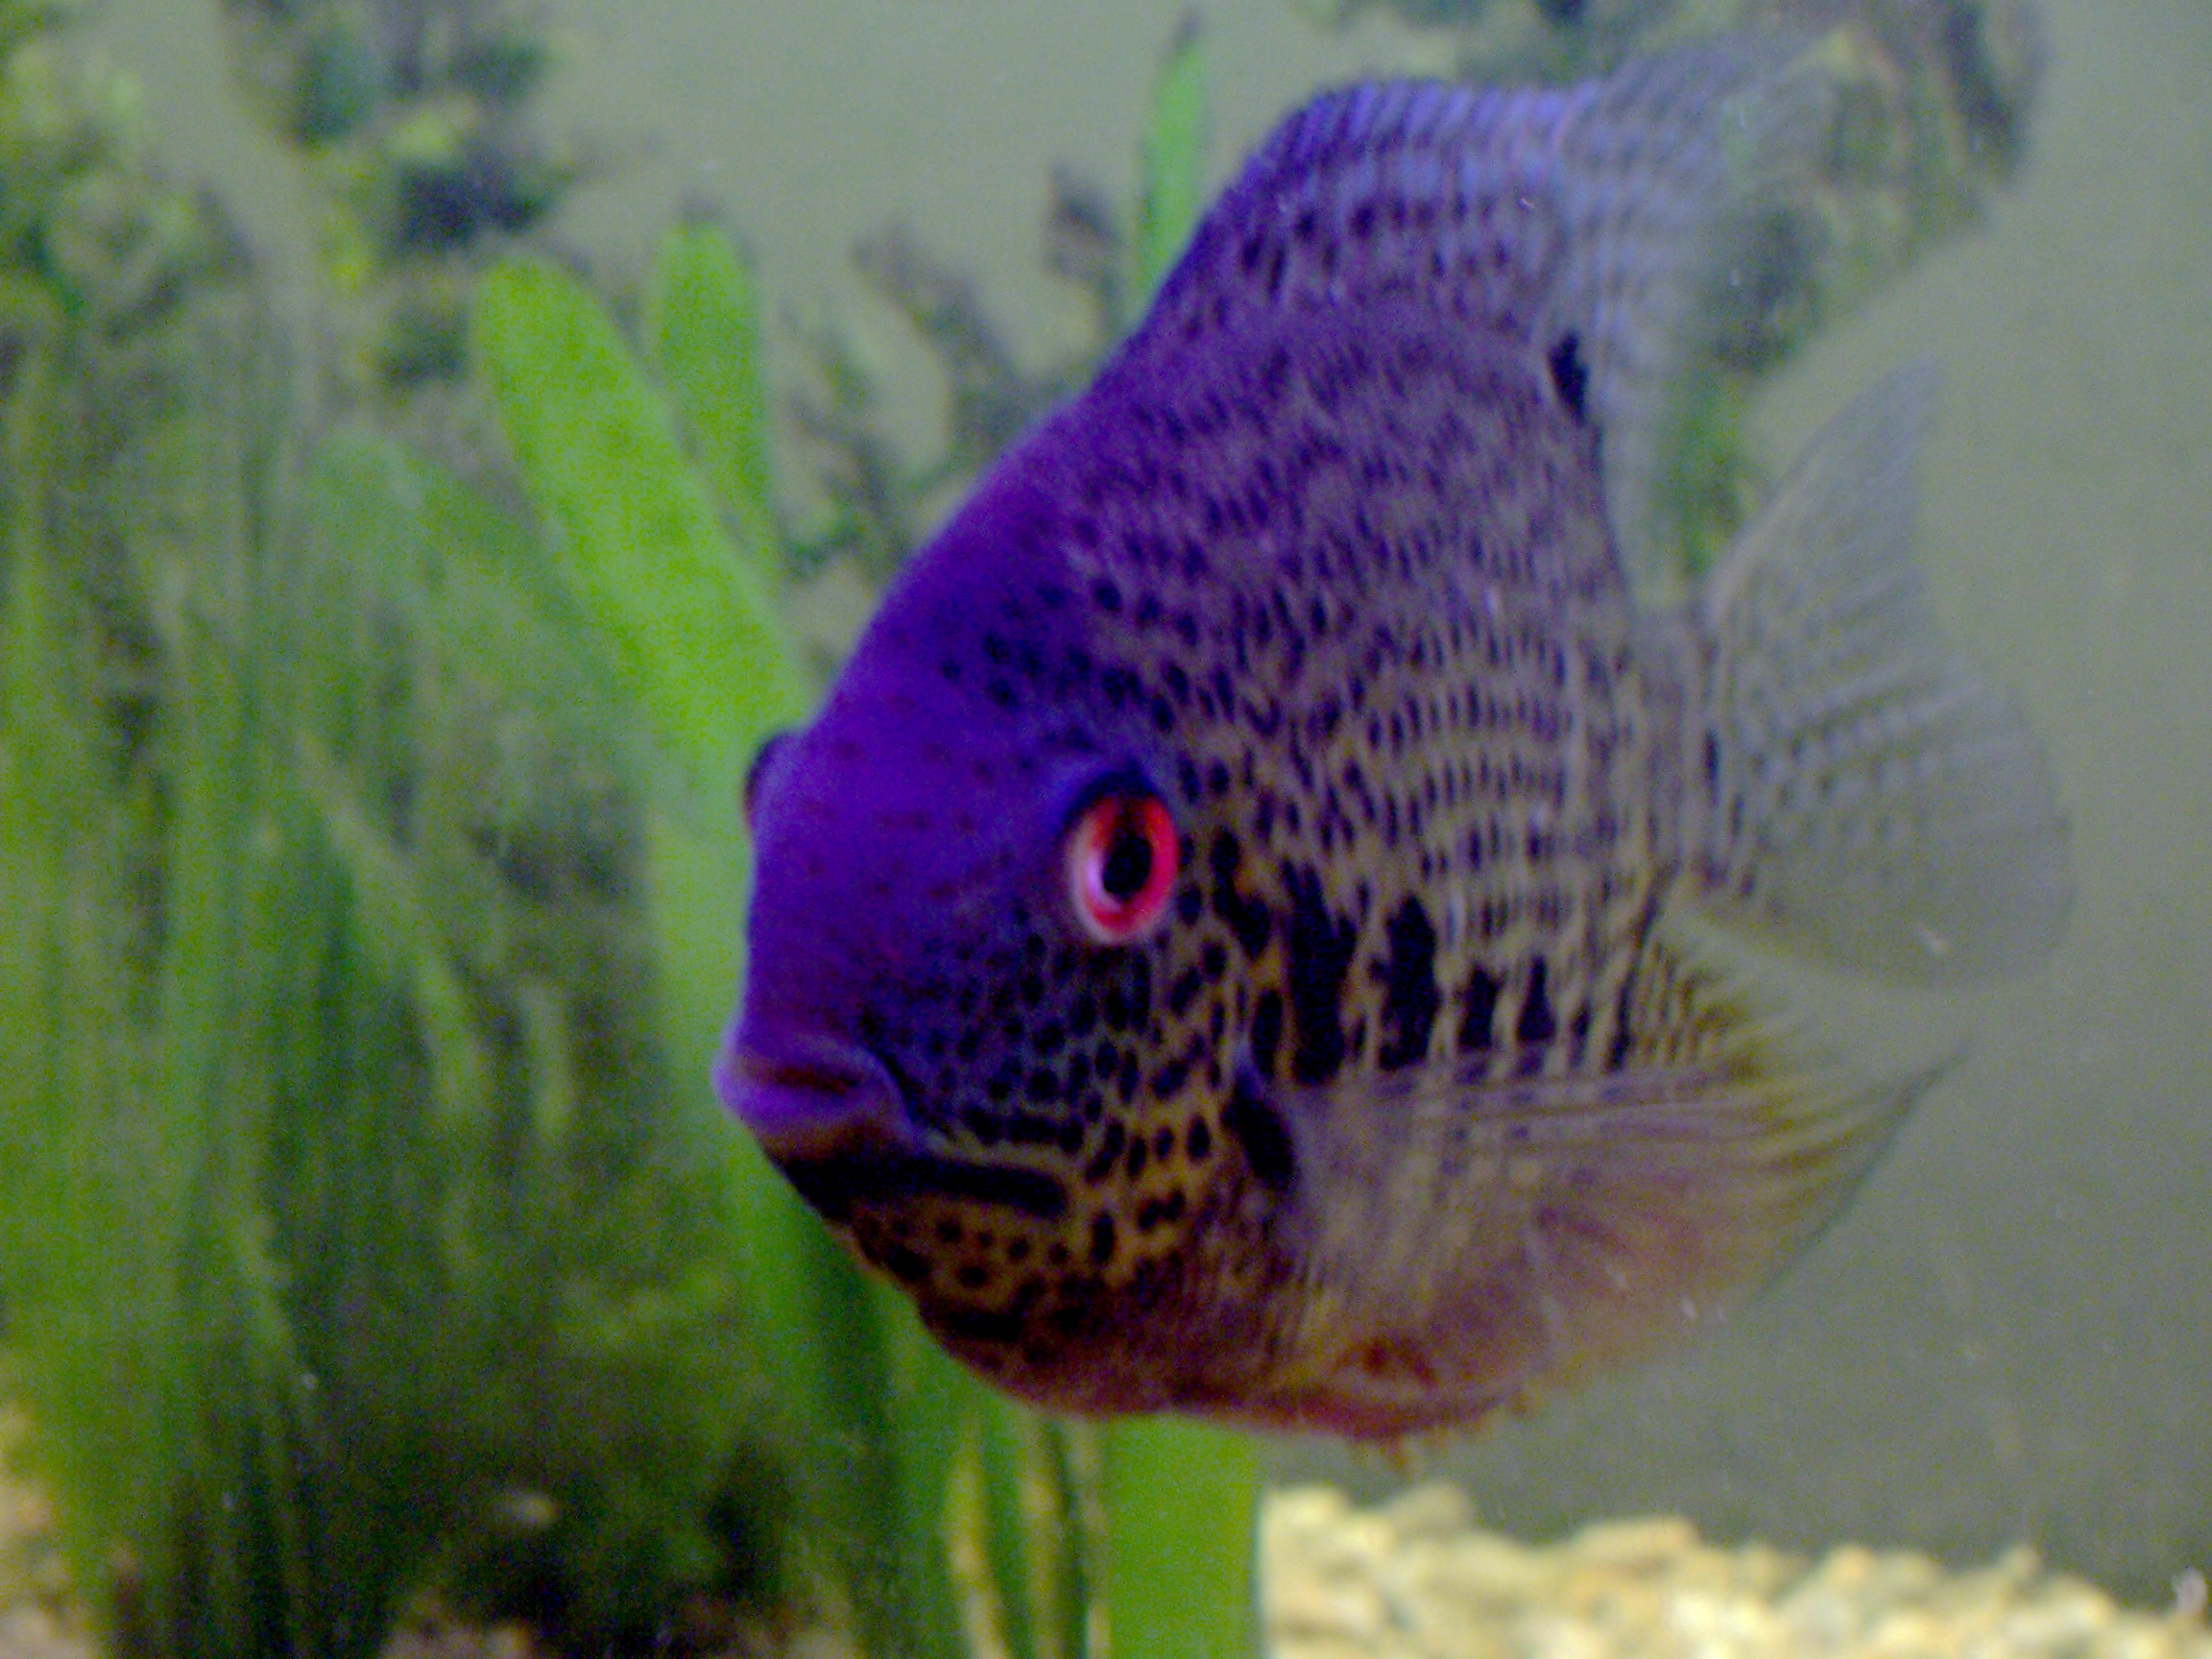 Freshwater aquarium fish with red eyes - File Purple Fish With Red Eyes In Aquarium Jpg